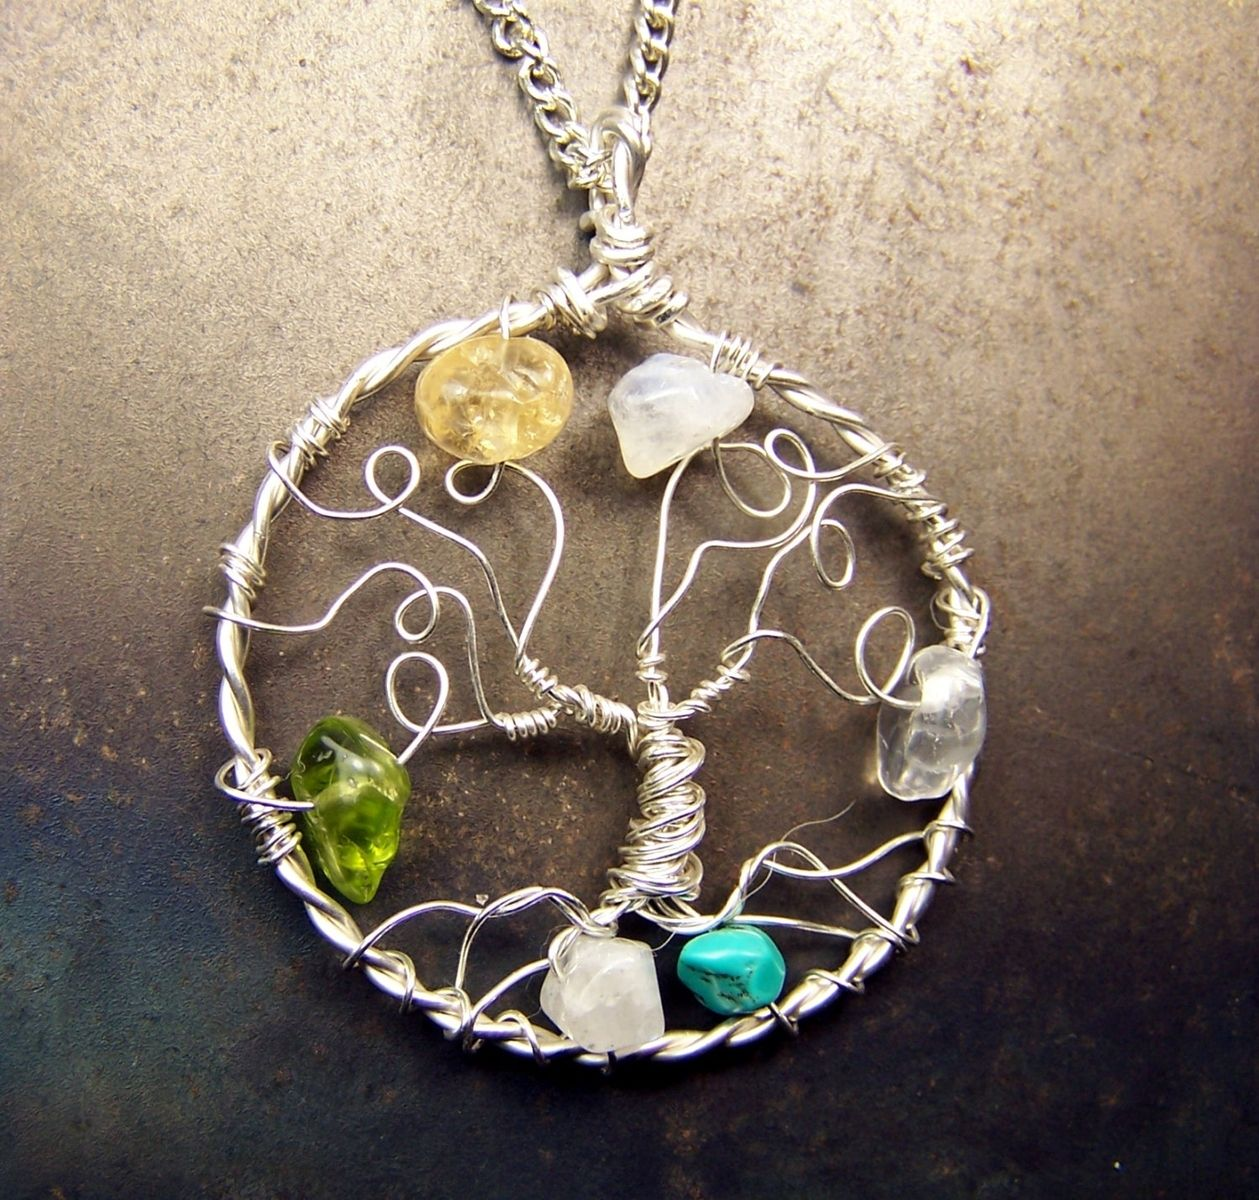 Custom Made Sossi Jewelry Home: Buy A Hand Made Genealogy Family Tree Necklace Pendant